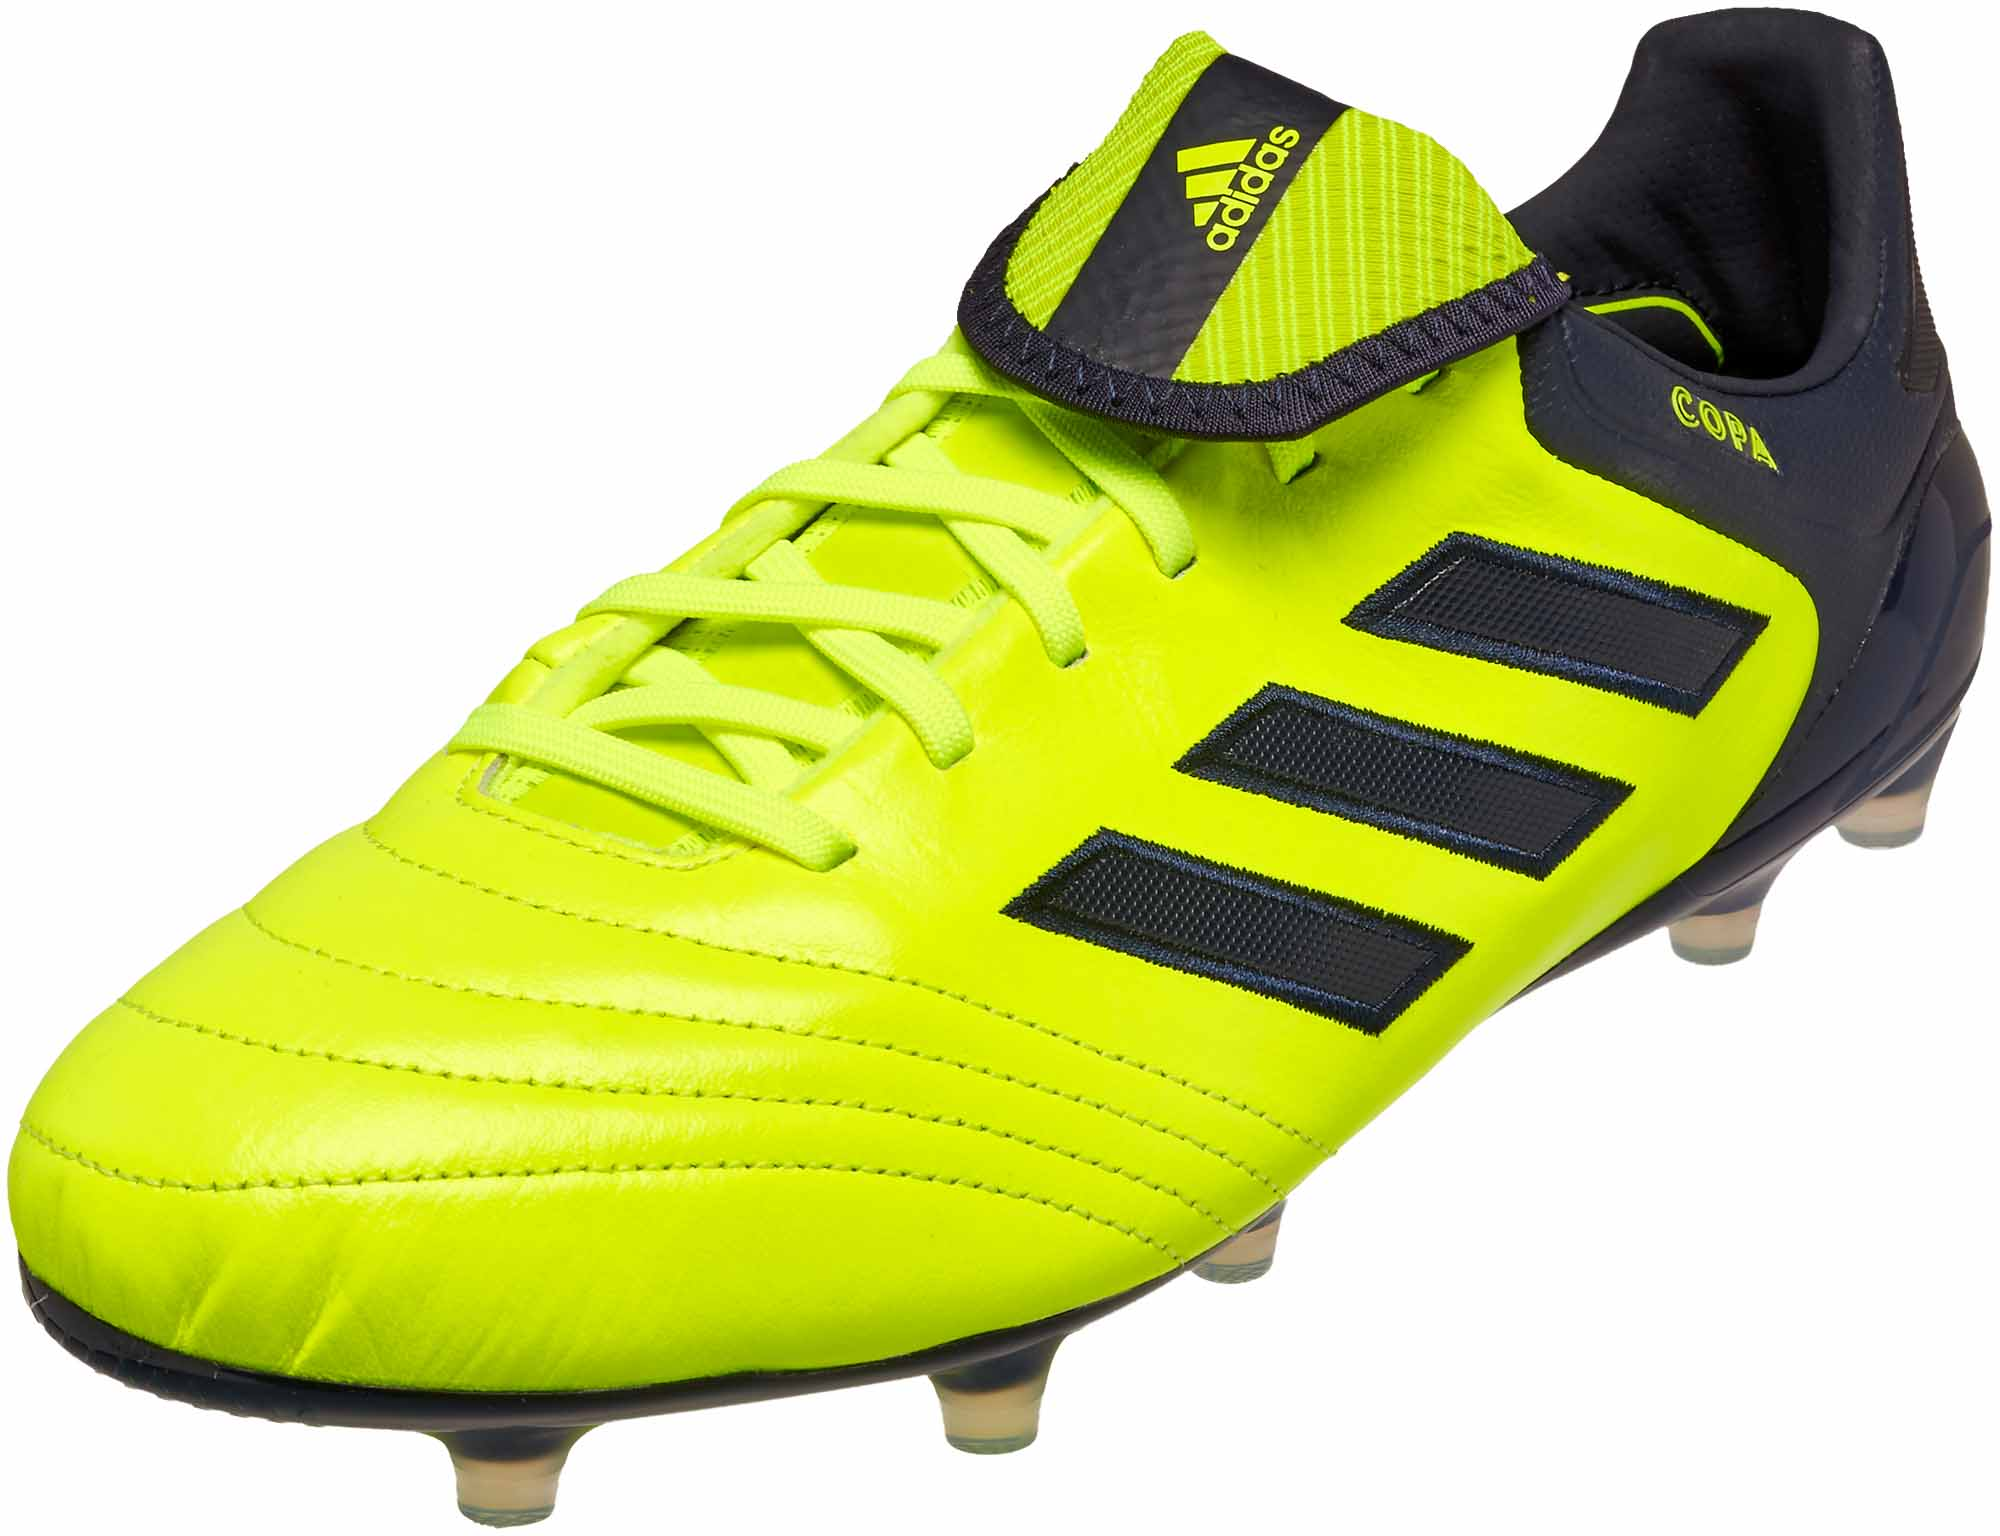 adidas Copa 17.1 FG Soccer Cleats - Solar Yellow   Legend Ink ... d48715bf6